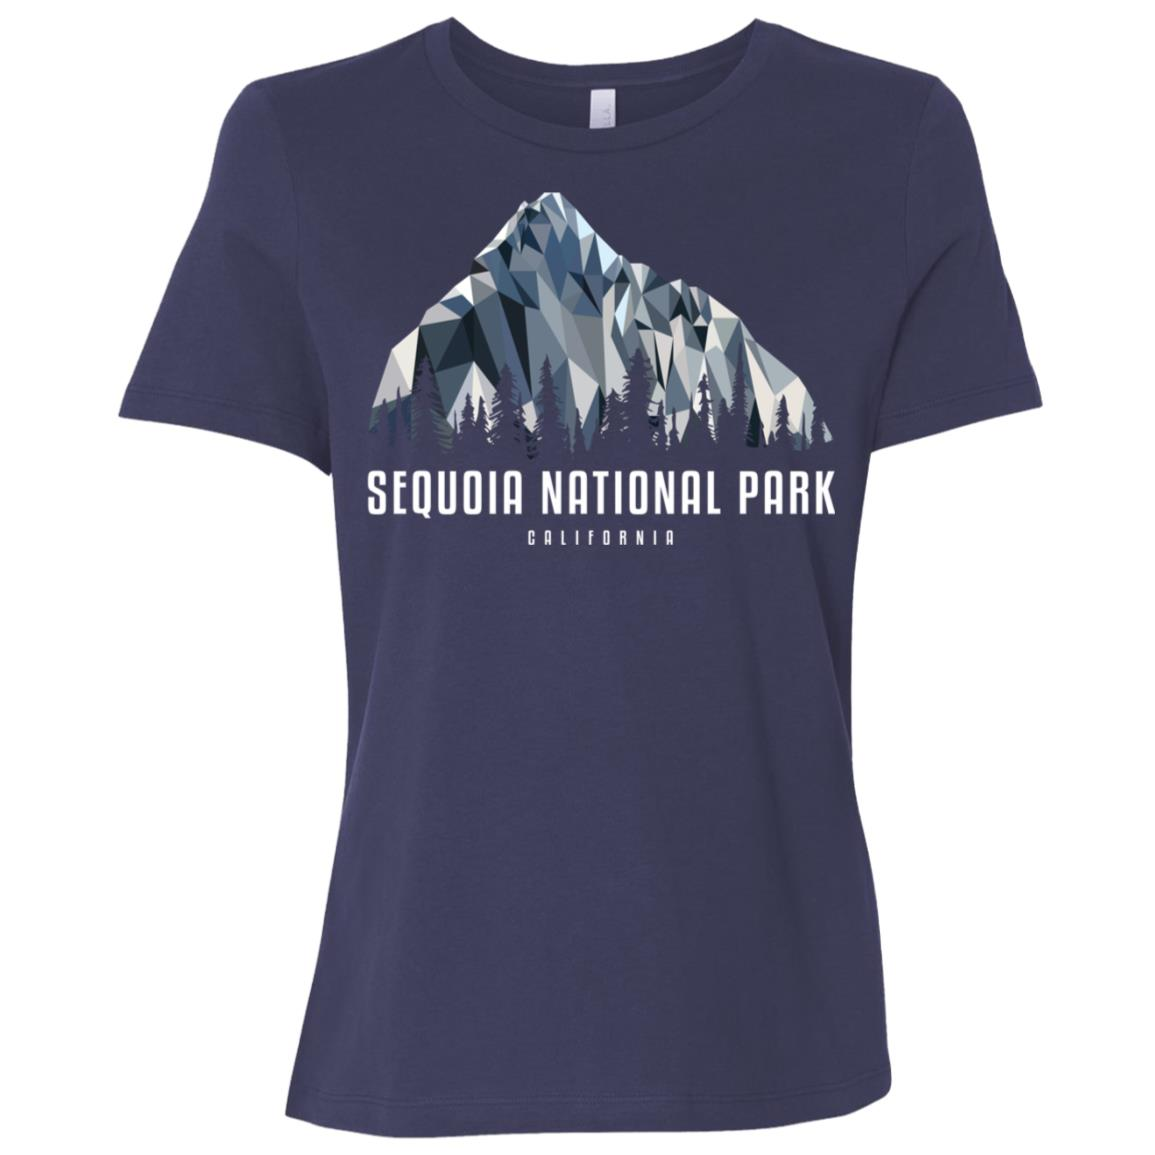 Sequoia National Park Low Poly Mountains Cool Gift Women Short Sleeve T-Shirt